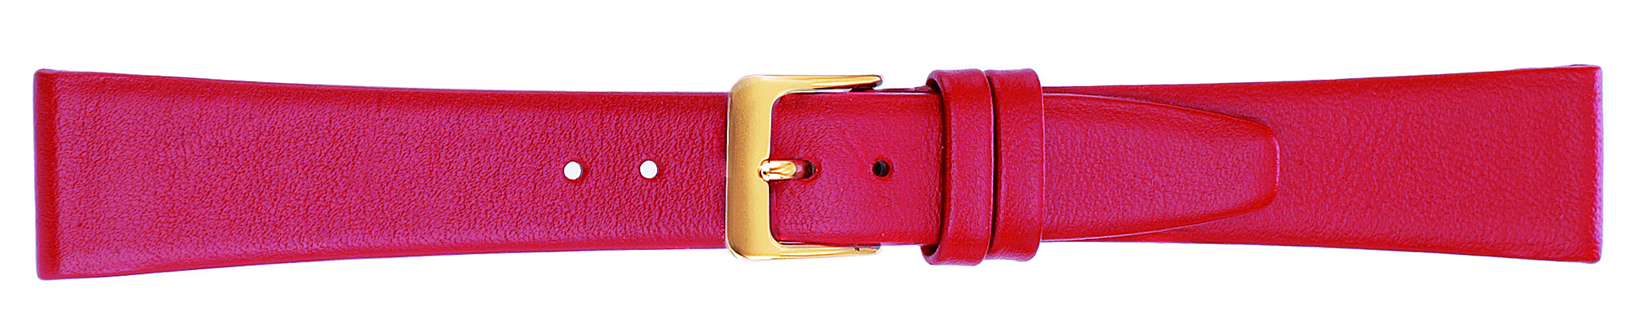 18MM Leather Band Red Smooth Calf-0